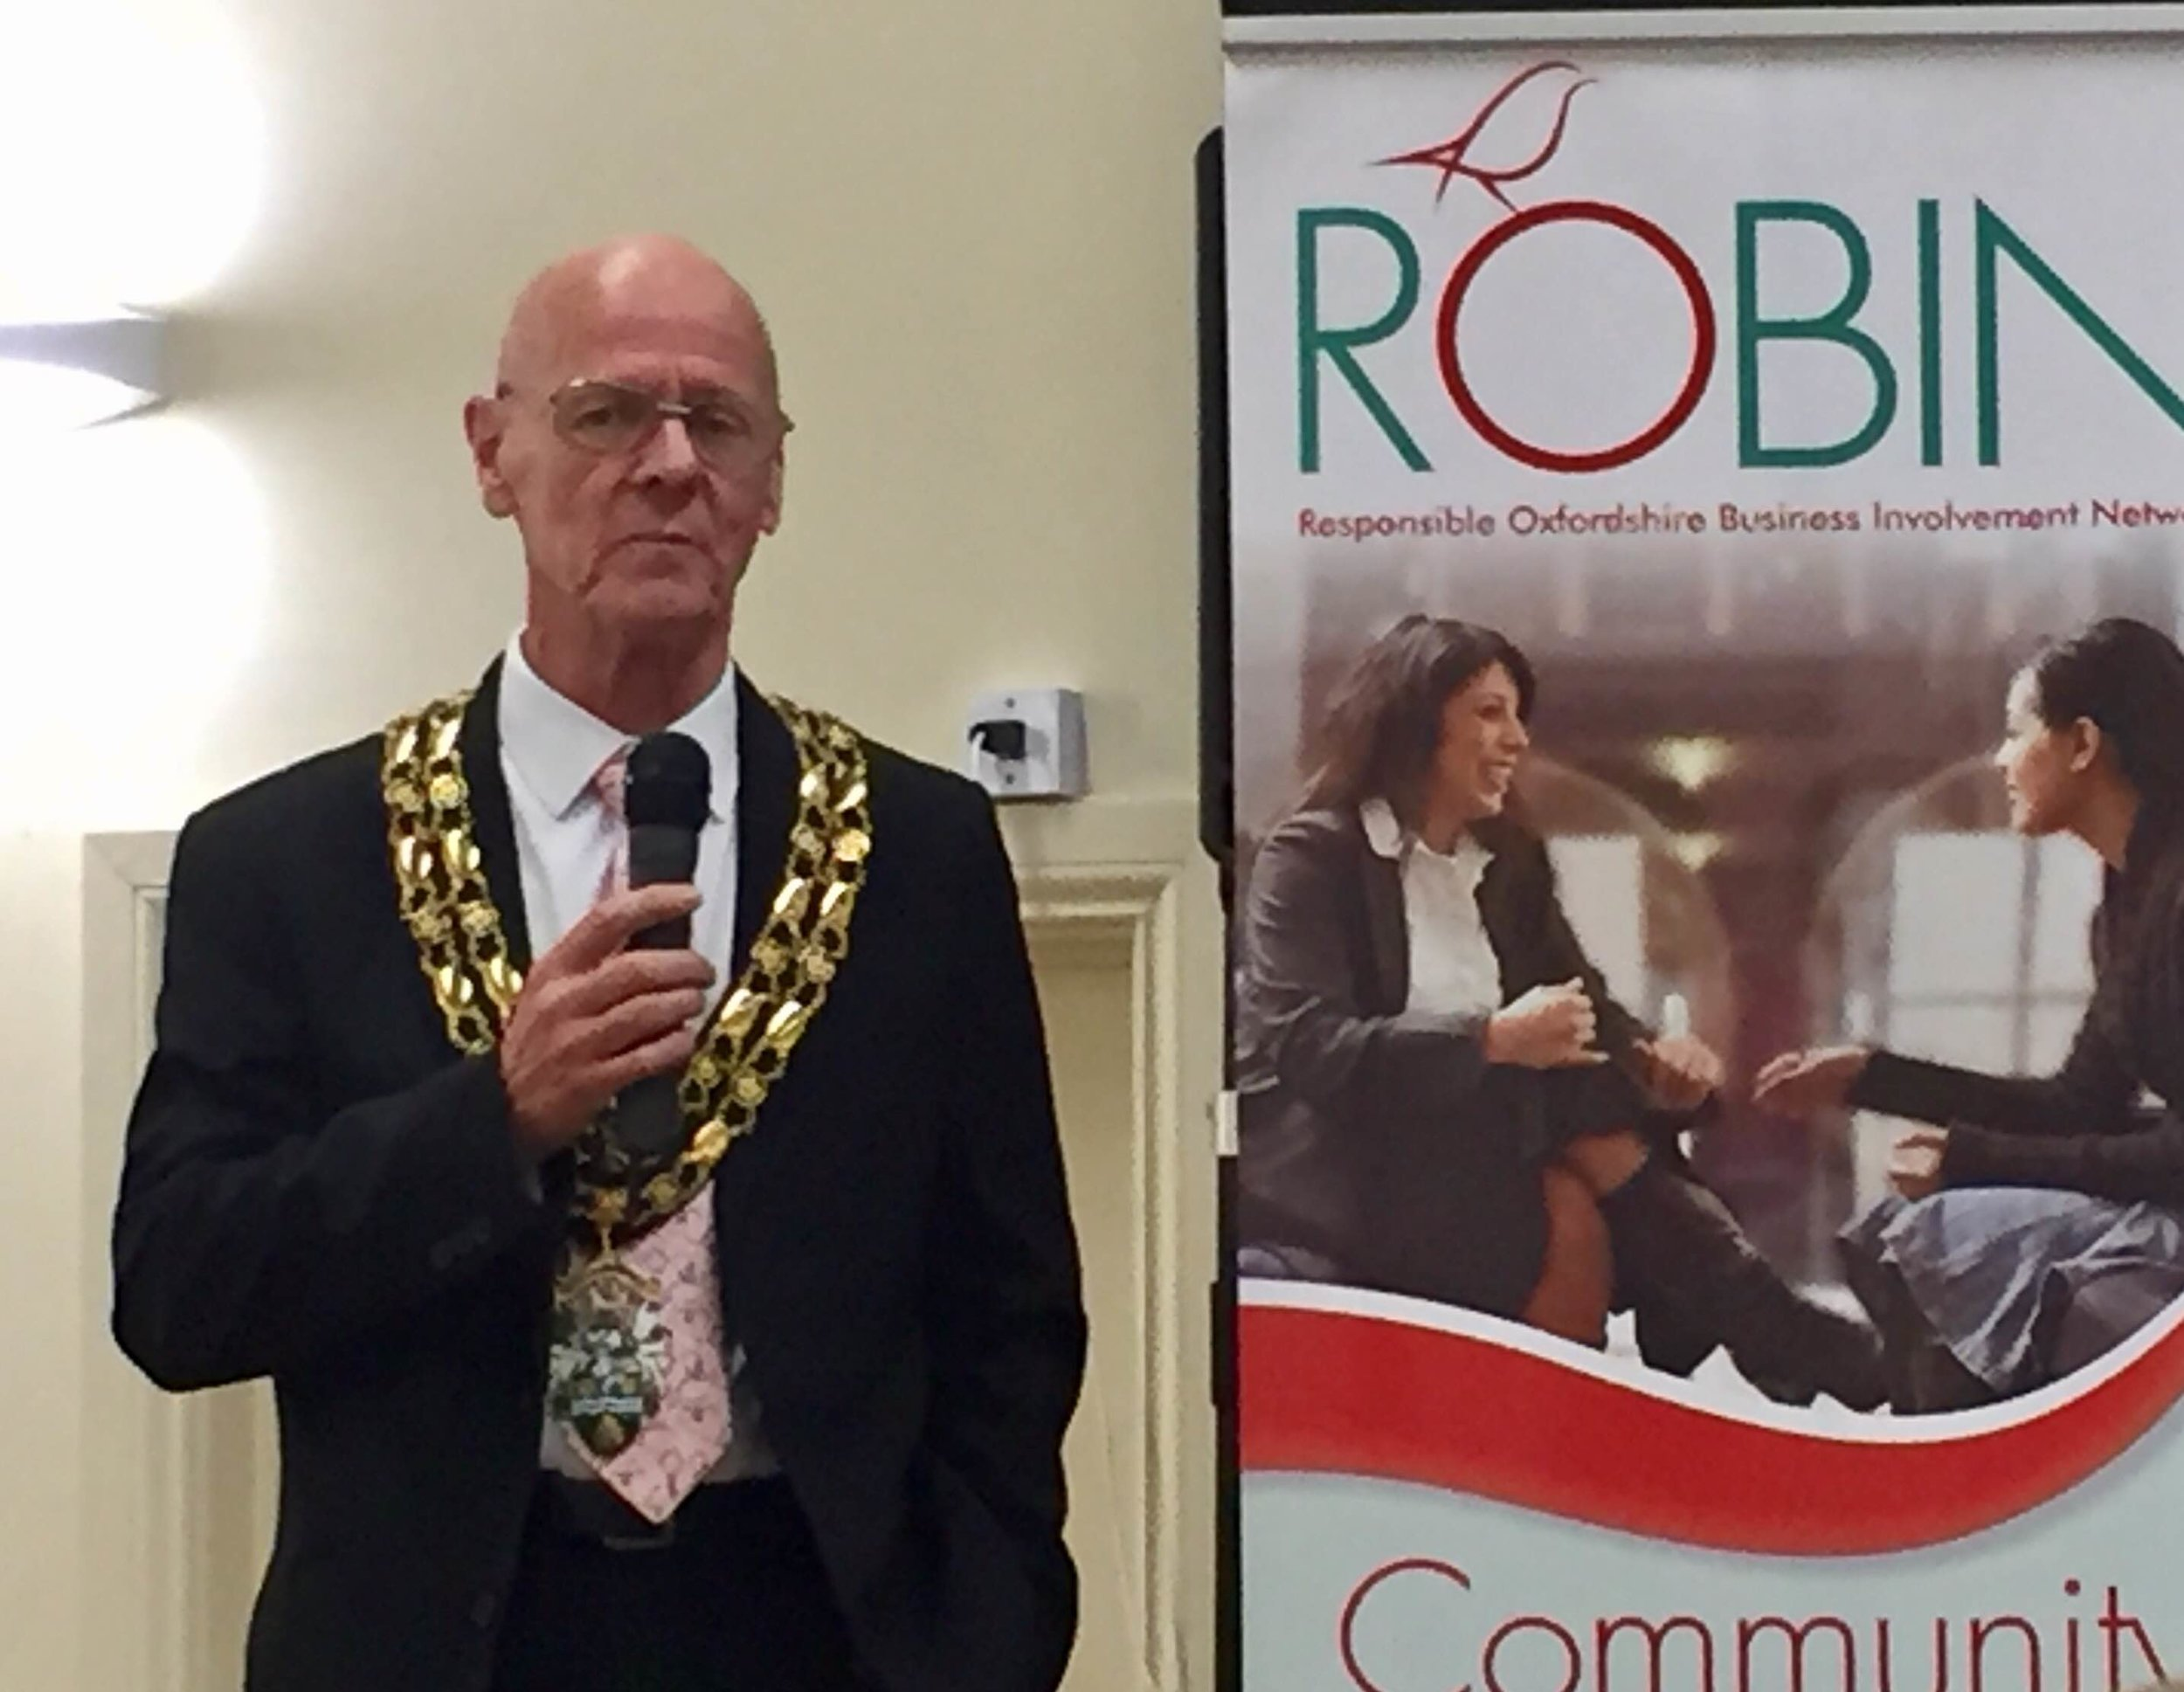 The Mayor of Witney opens the ROBIN event